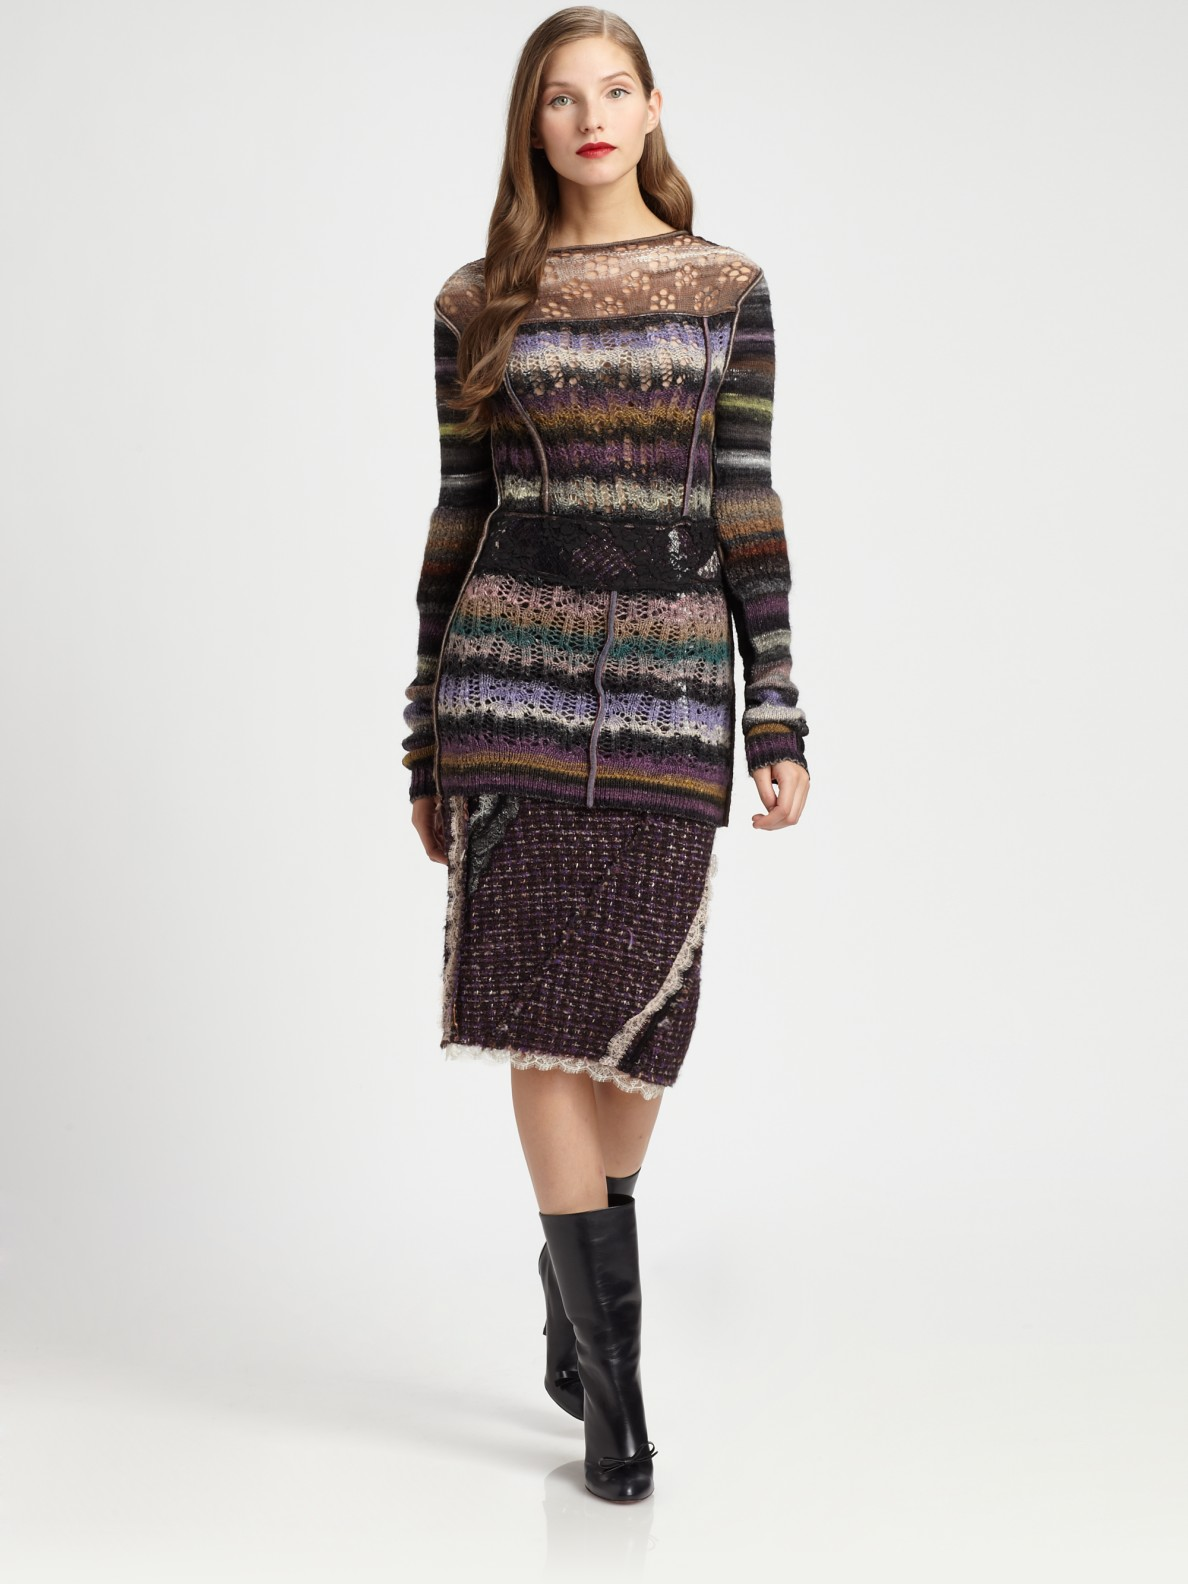 Nina Ricci Patchwork Pullover In Brown Lyst